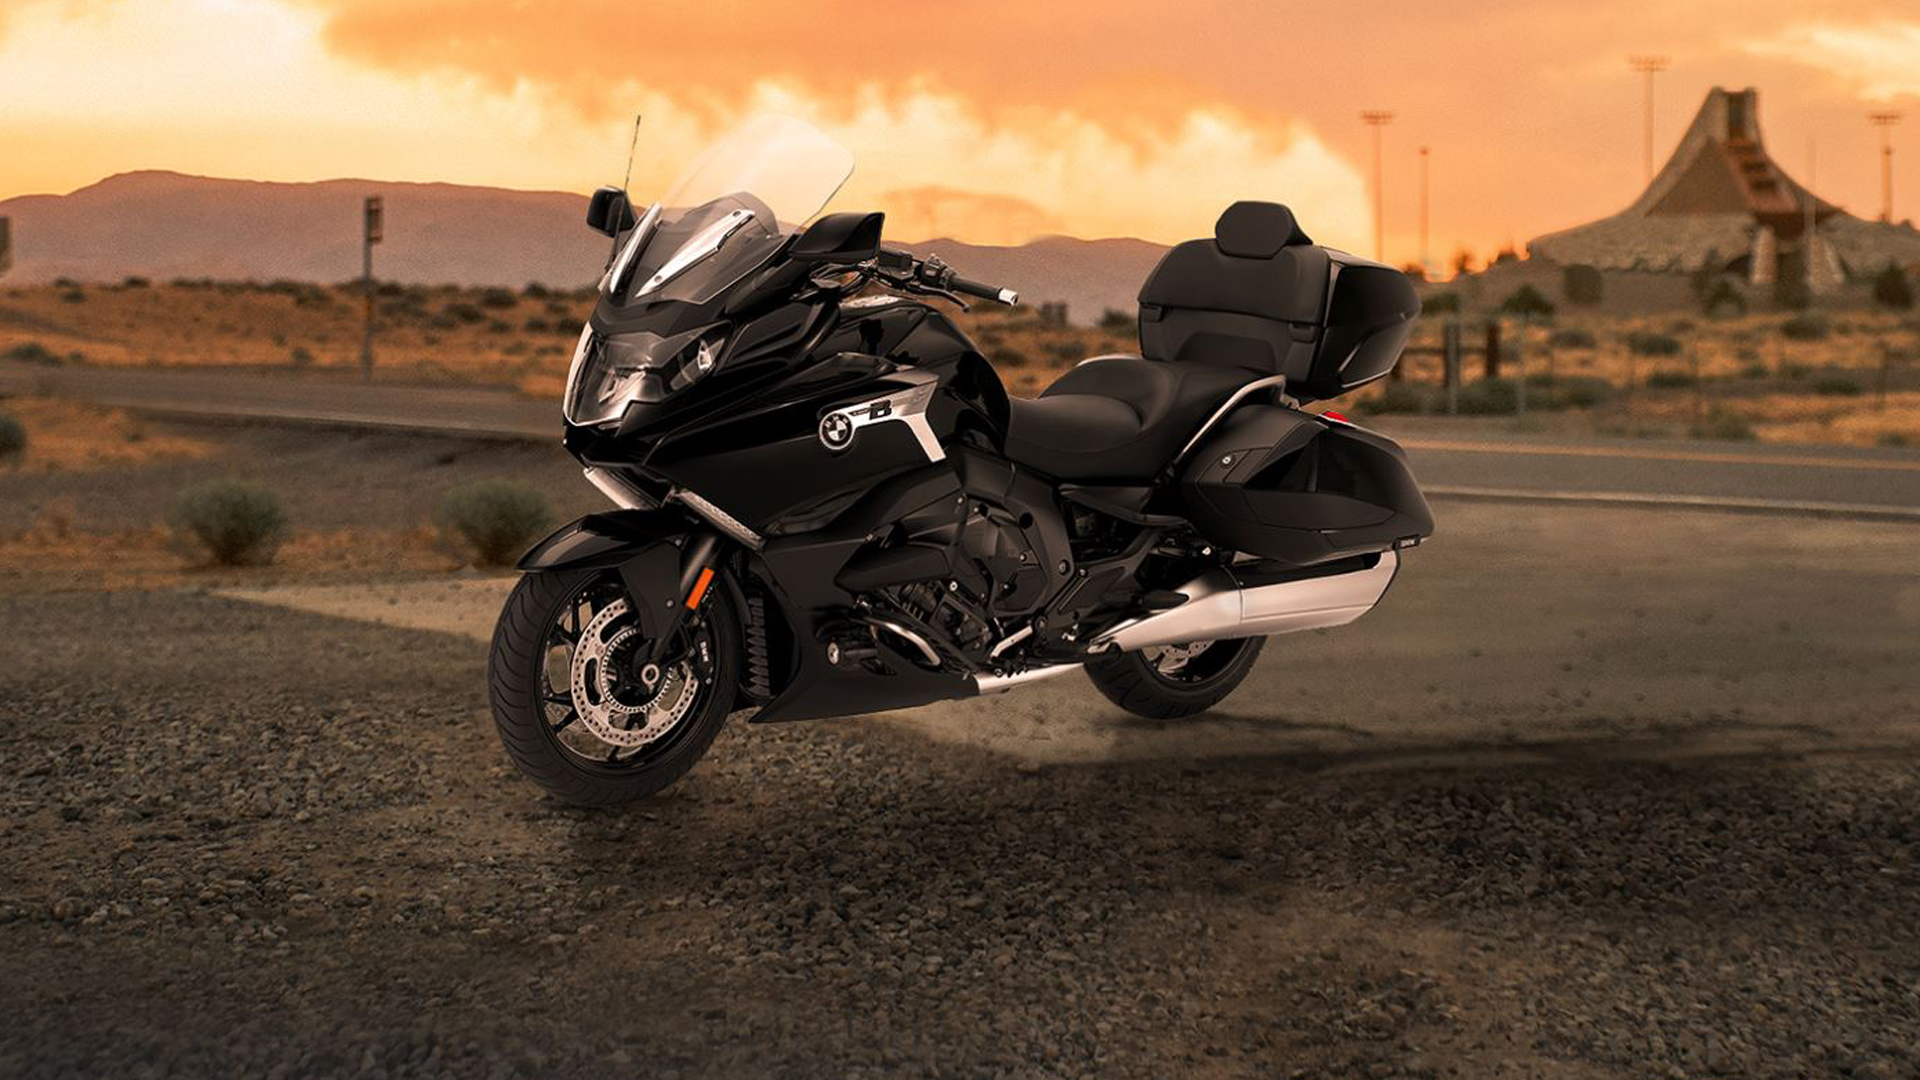 The Bmw K 1600 Grand America Norcal Bmw Motorcycle